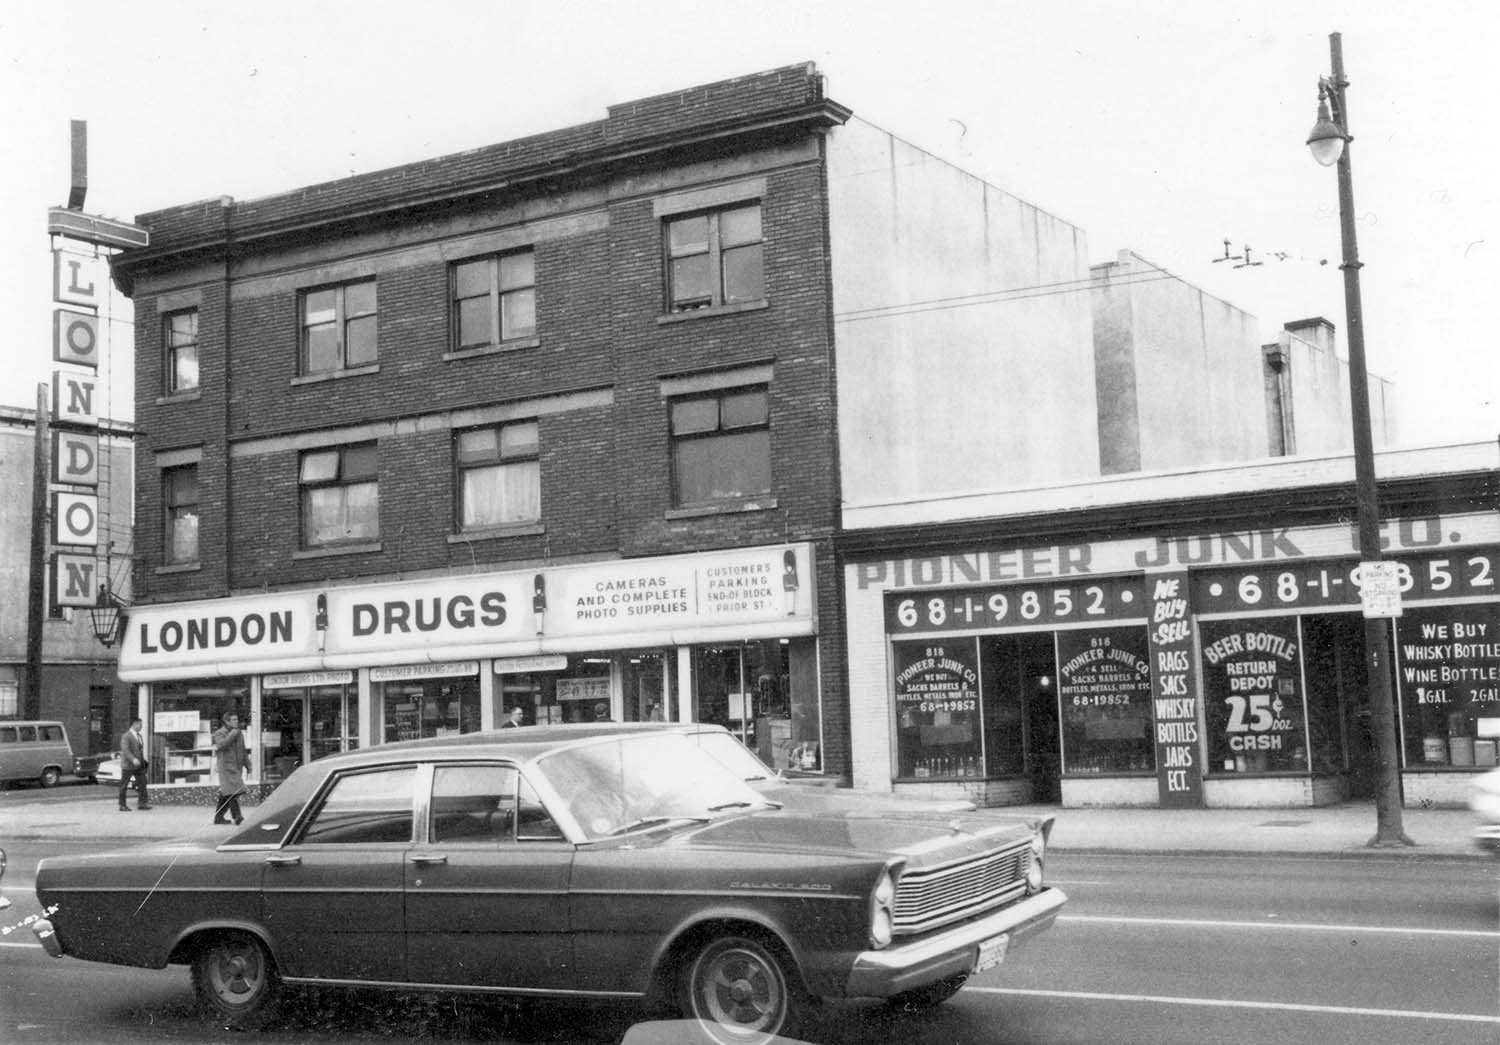 800 - 804 Main Street, 1968. Photograph shows London Drugs (800 Main Street) and Pioneer Junk Co. (818 Main Street). Reference code COV-S168-: CVA 203-10